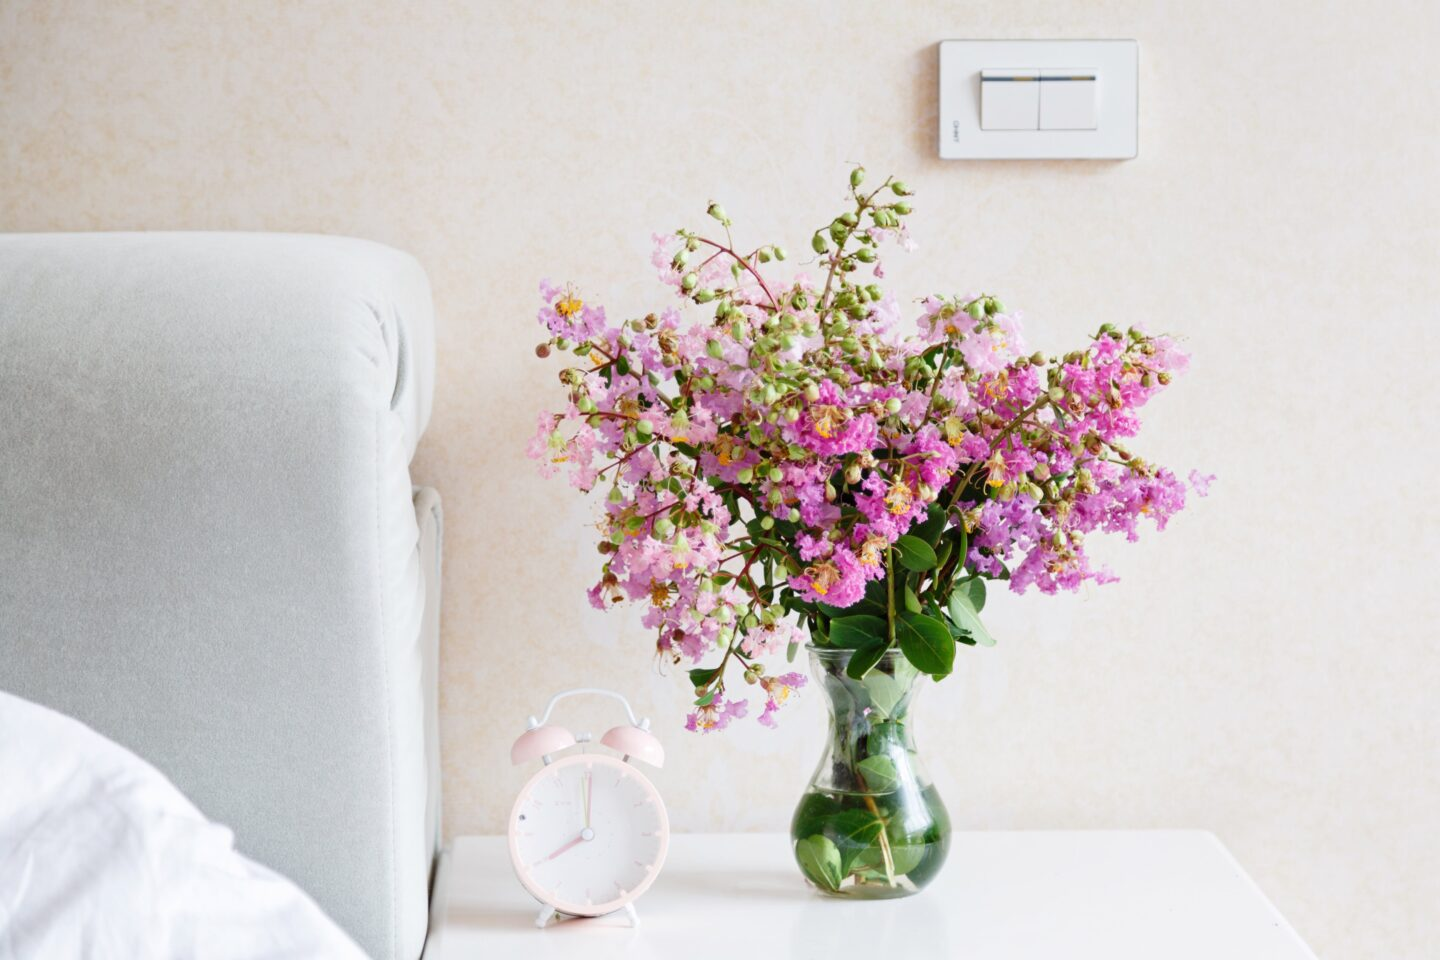 Fresh flowers on a nightstand are an easy and cheap home decor idea perfect for your bedroom.